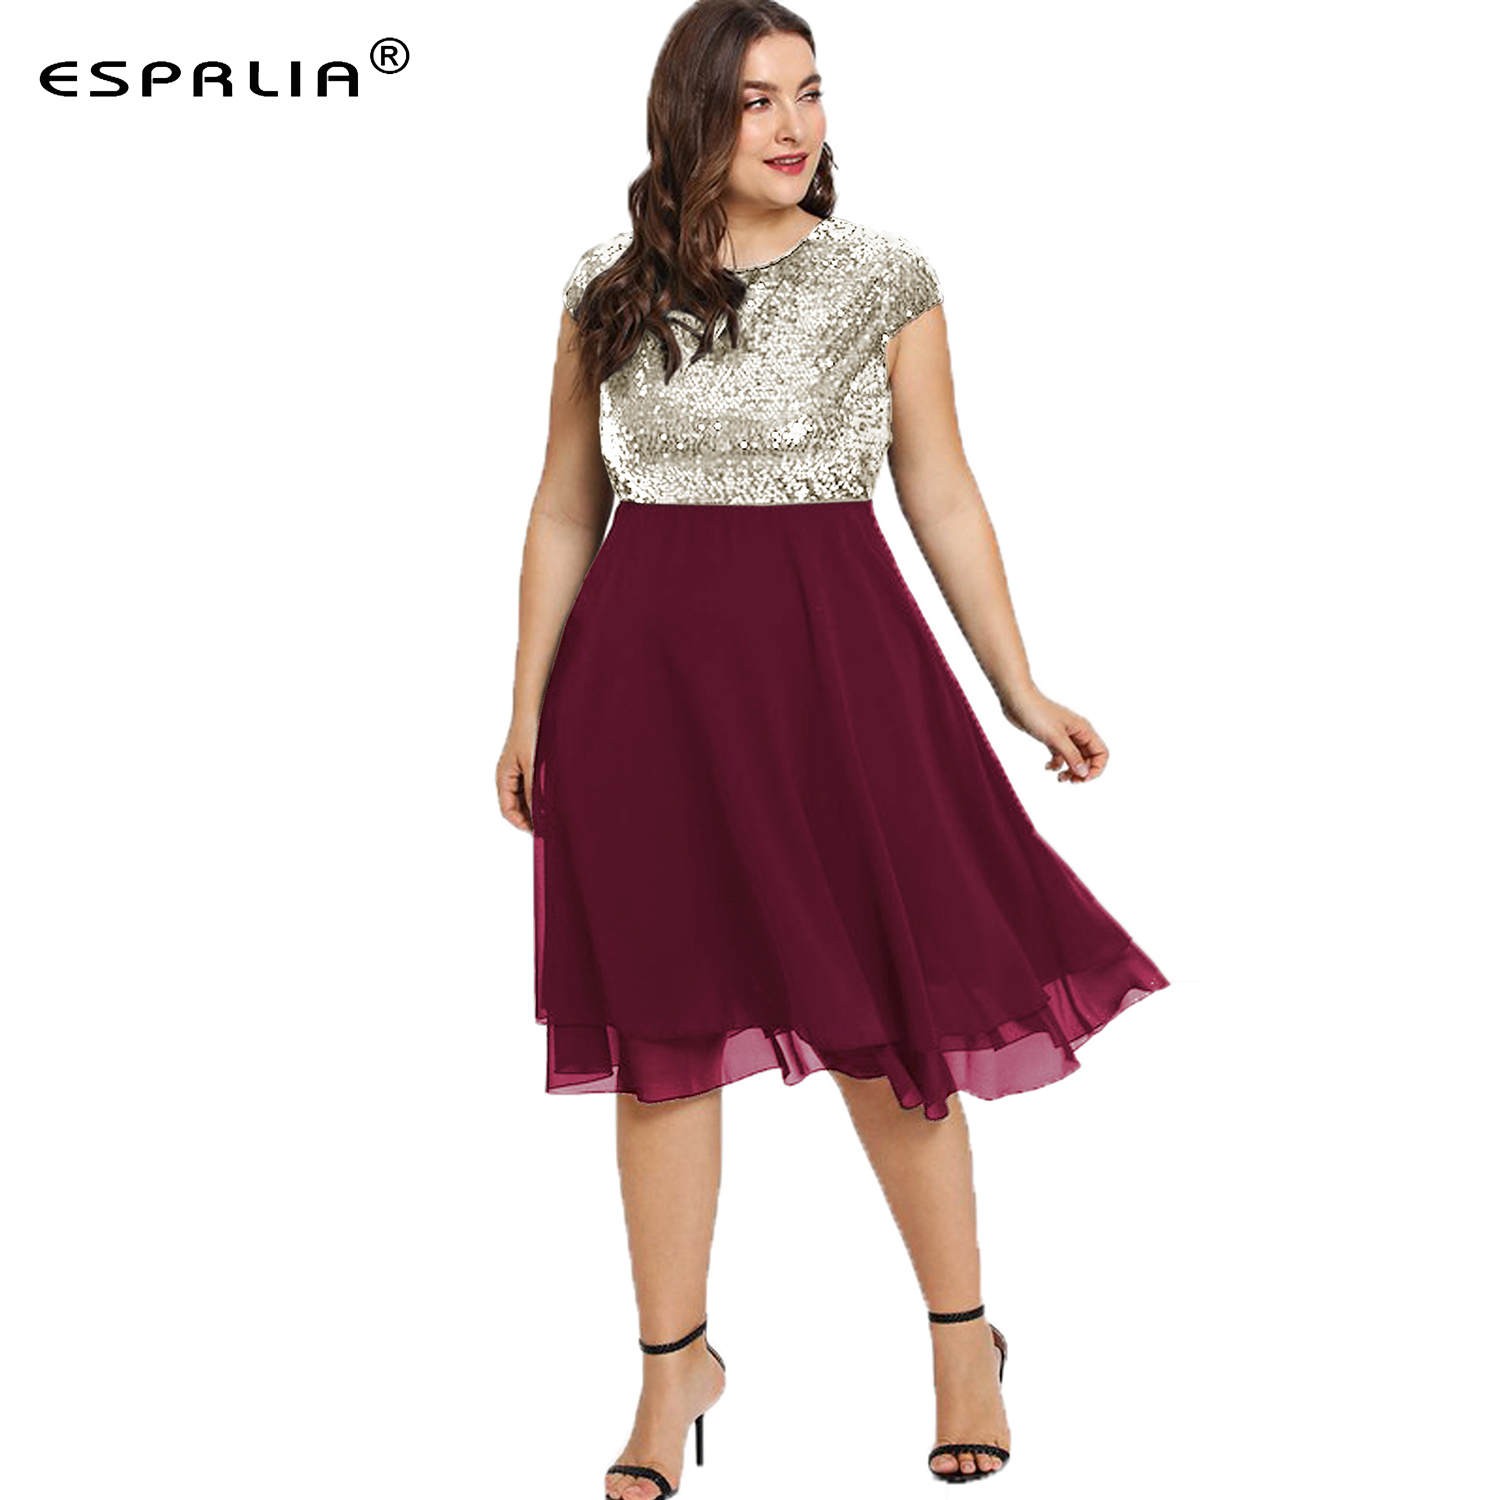 US $21.99 |ESPRLIA Womens Plus Size Sequin Short Cap Sleeve Holiday Party  Homecoming Midi Black Dress 3XL 4XL 5xl-in Dresses from Women\'s Clothing on  ...